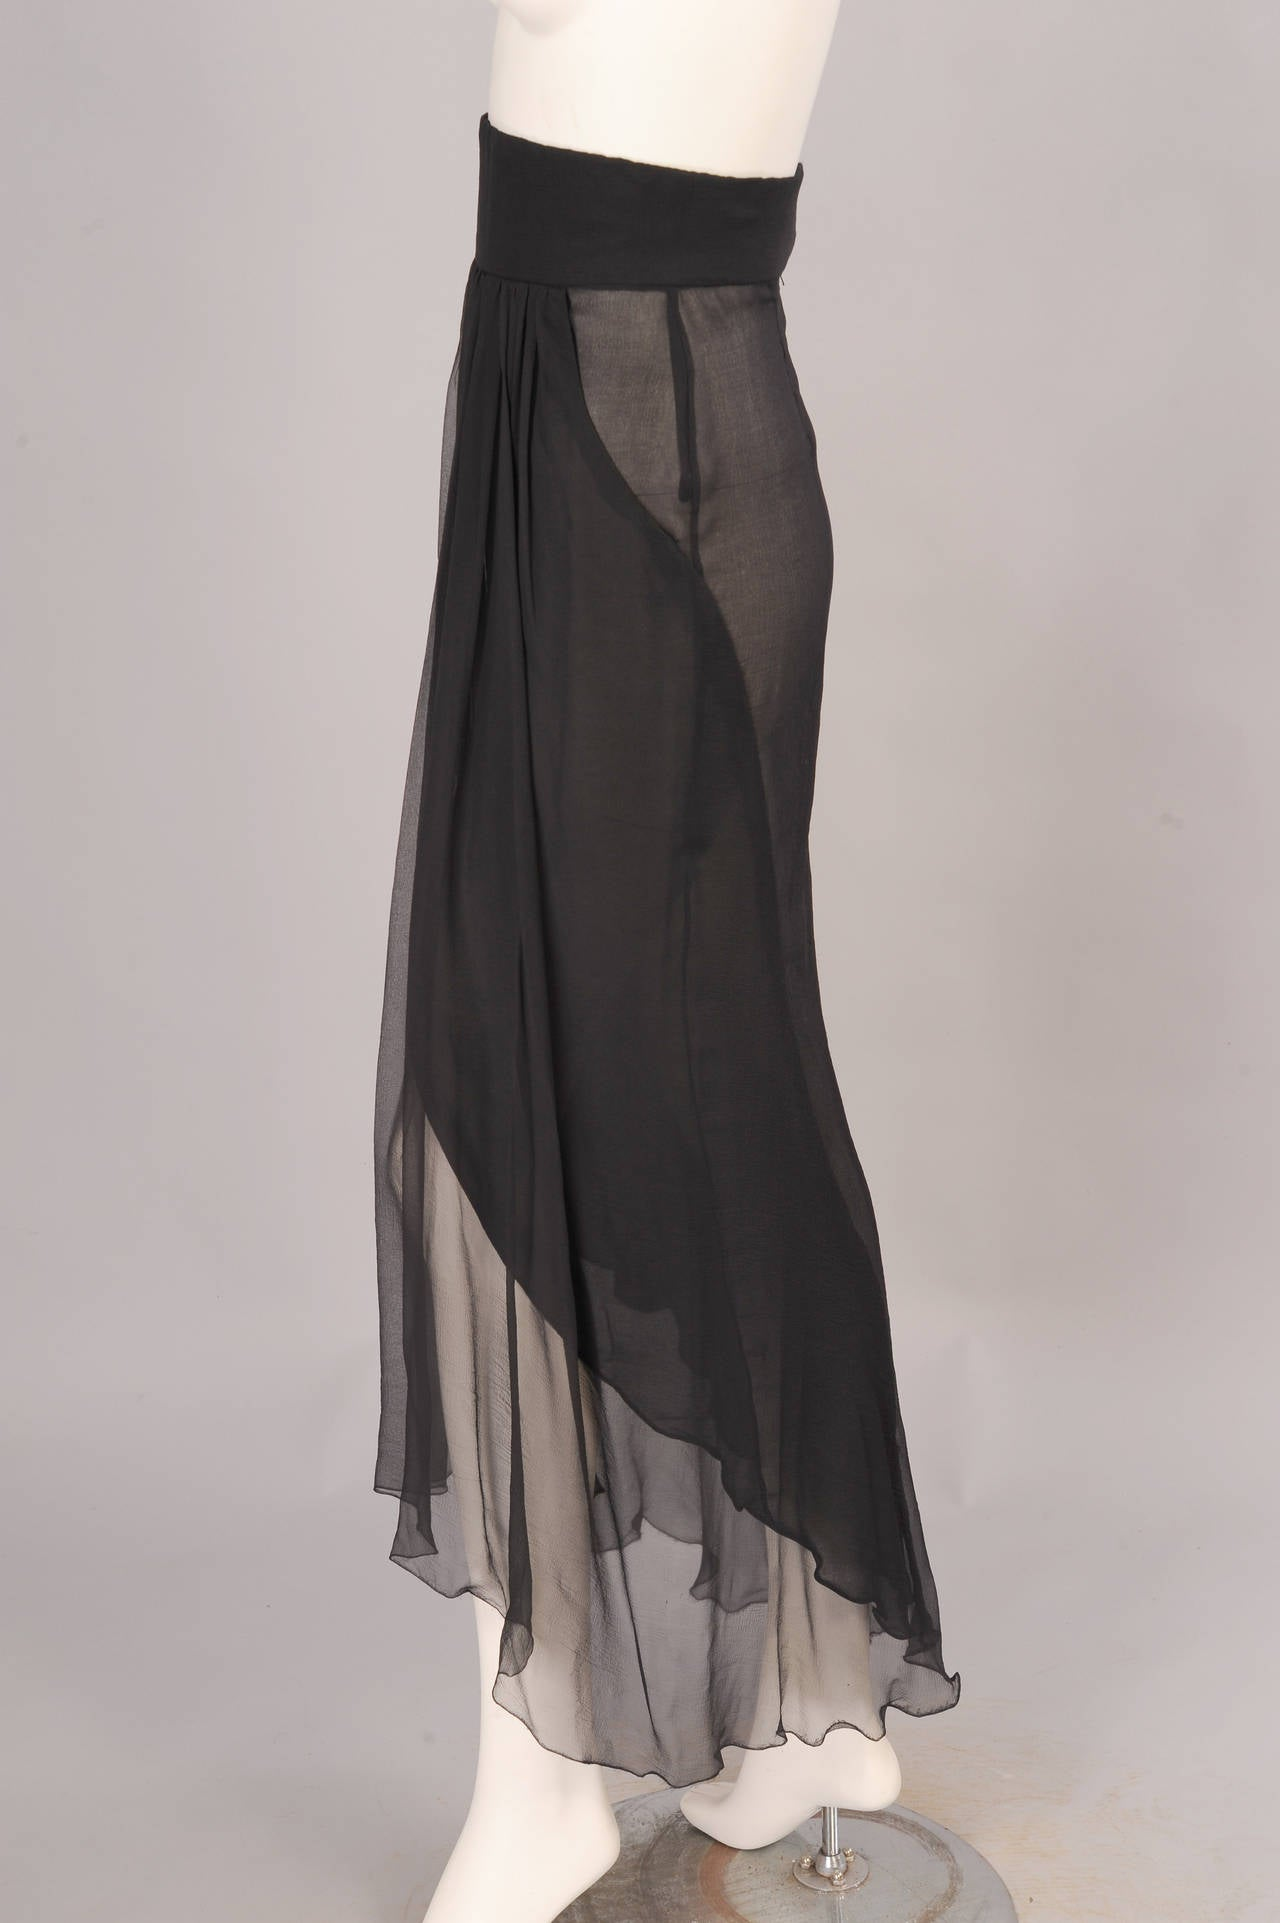 Yves Saint Laurent Haute Couture Sheer Silk Chiffon Skirt 2